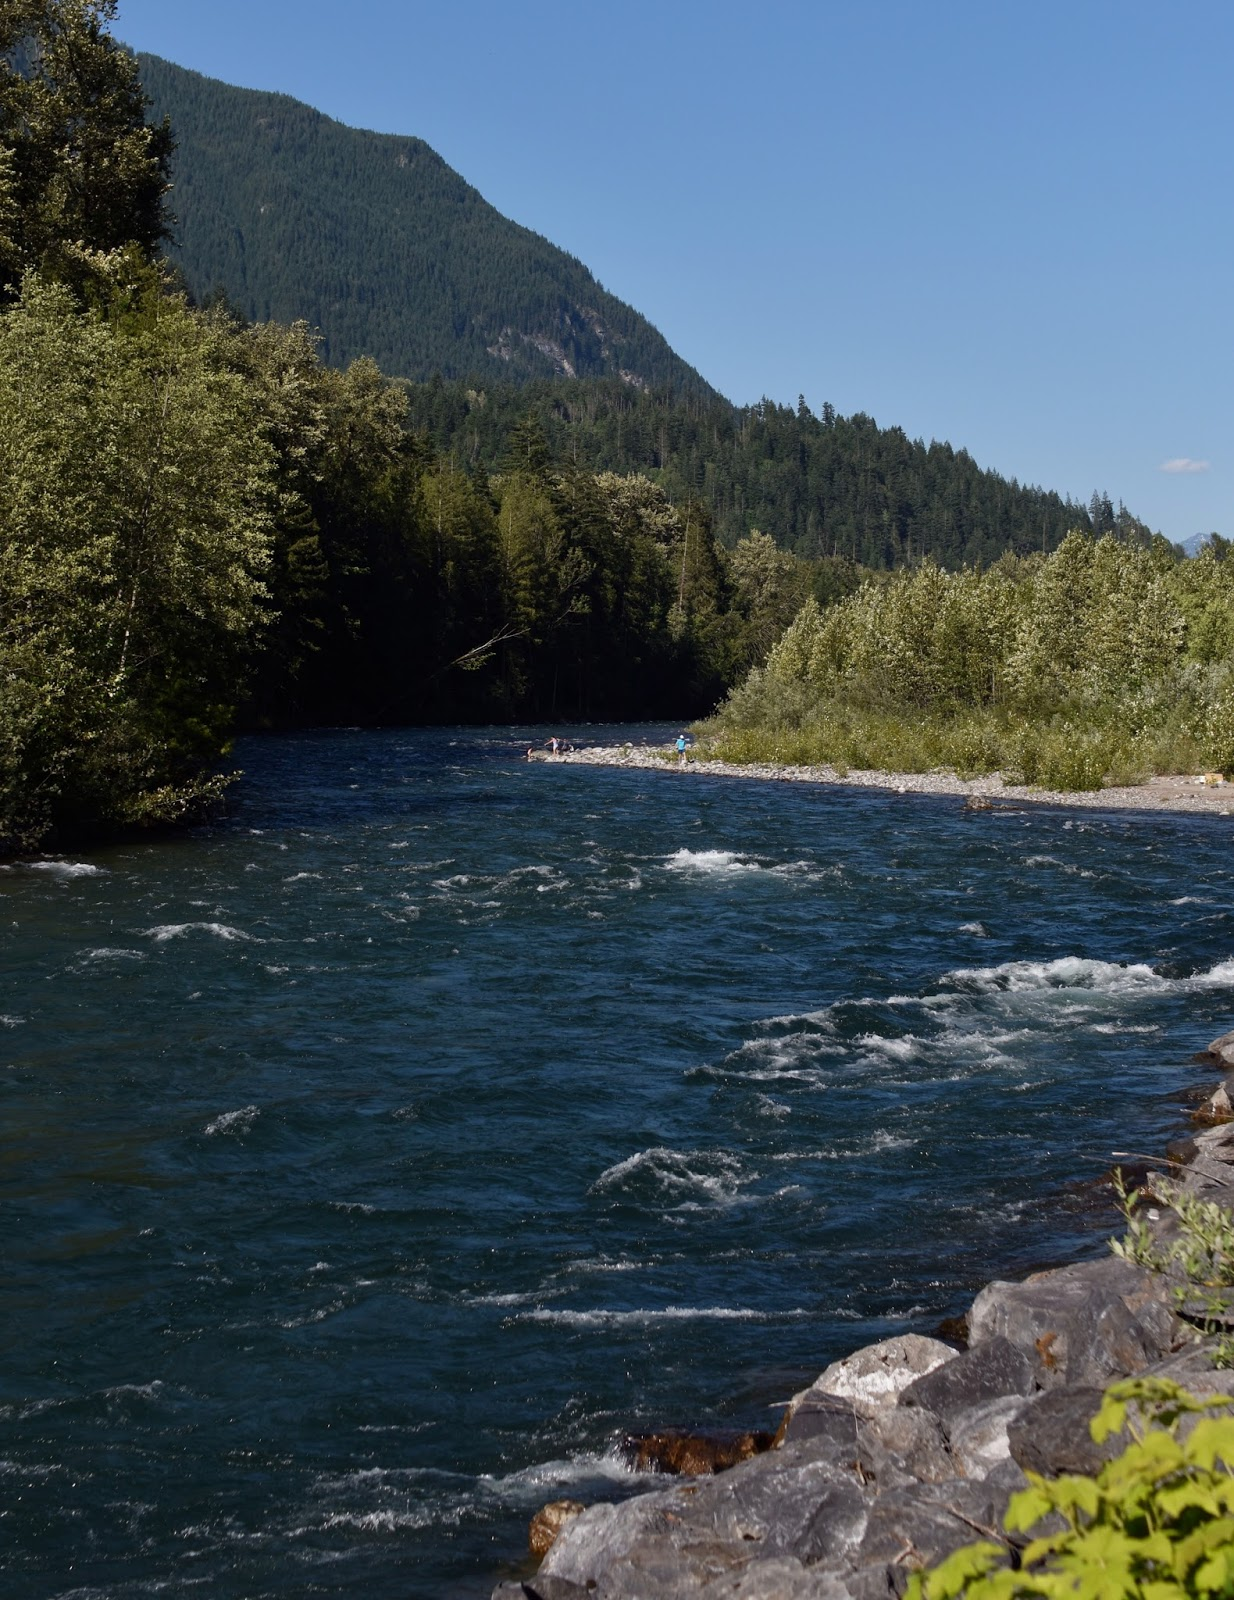 Chilliwack River, Chilliwack, British Columbia, Canada